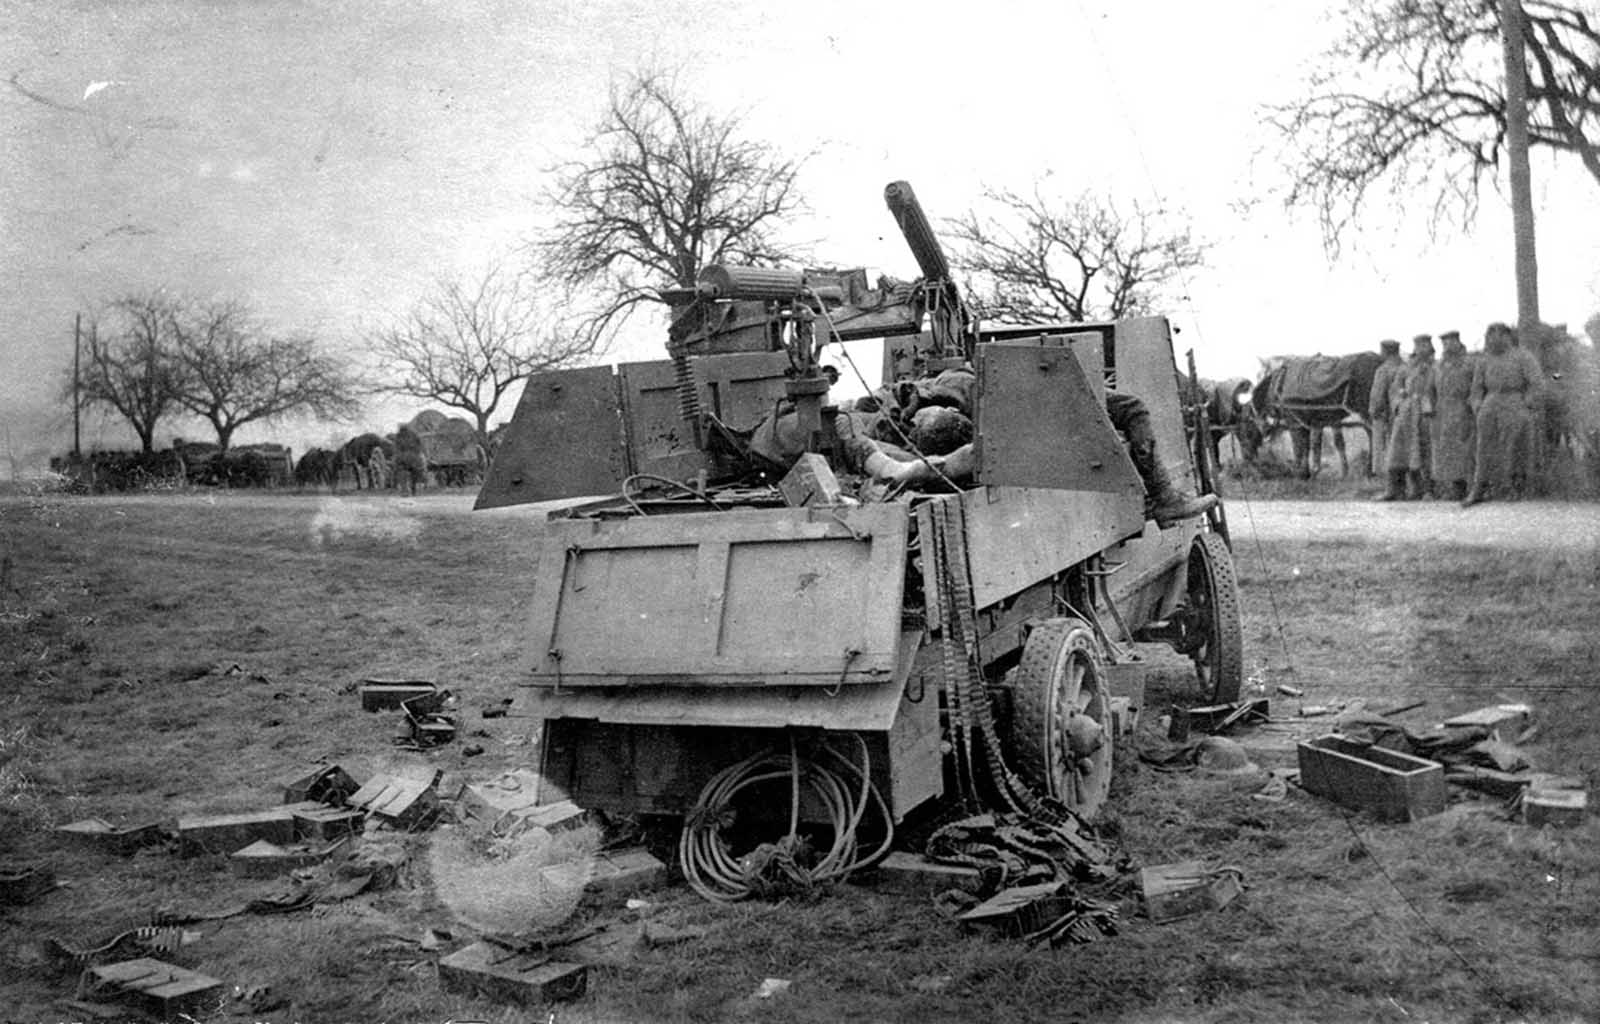 A German column looks over a destroyed Canadian Armored Autocar, the bodies of Canadian soldiers, empty belts, and cartridge boxes strewn about.